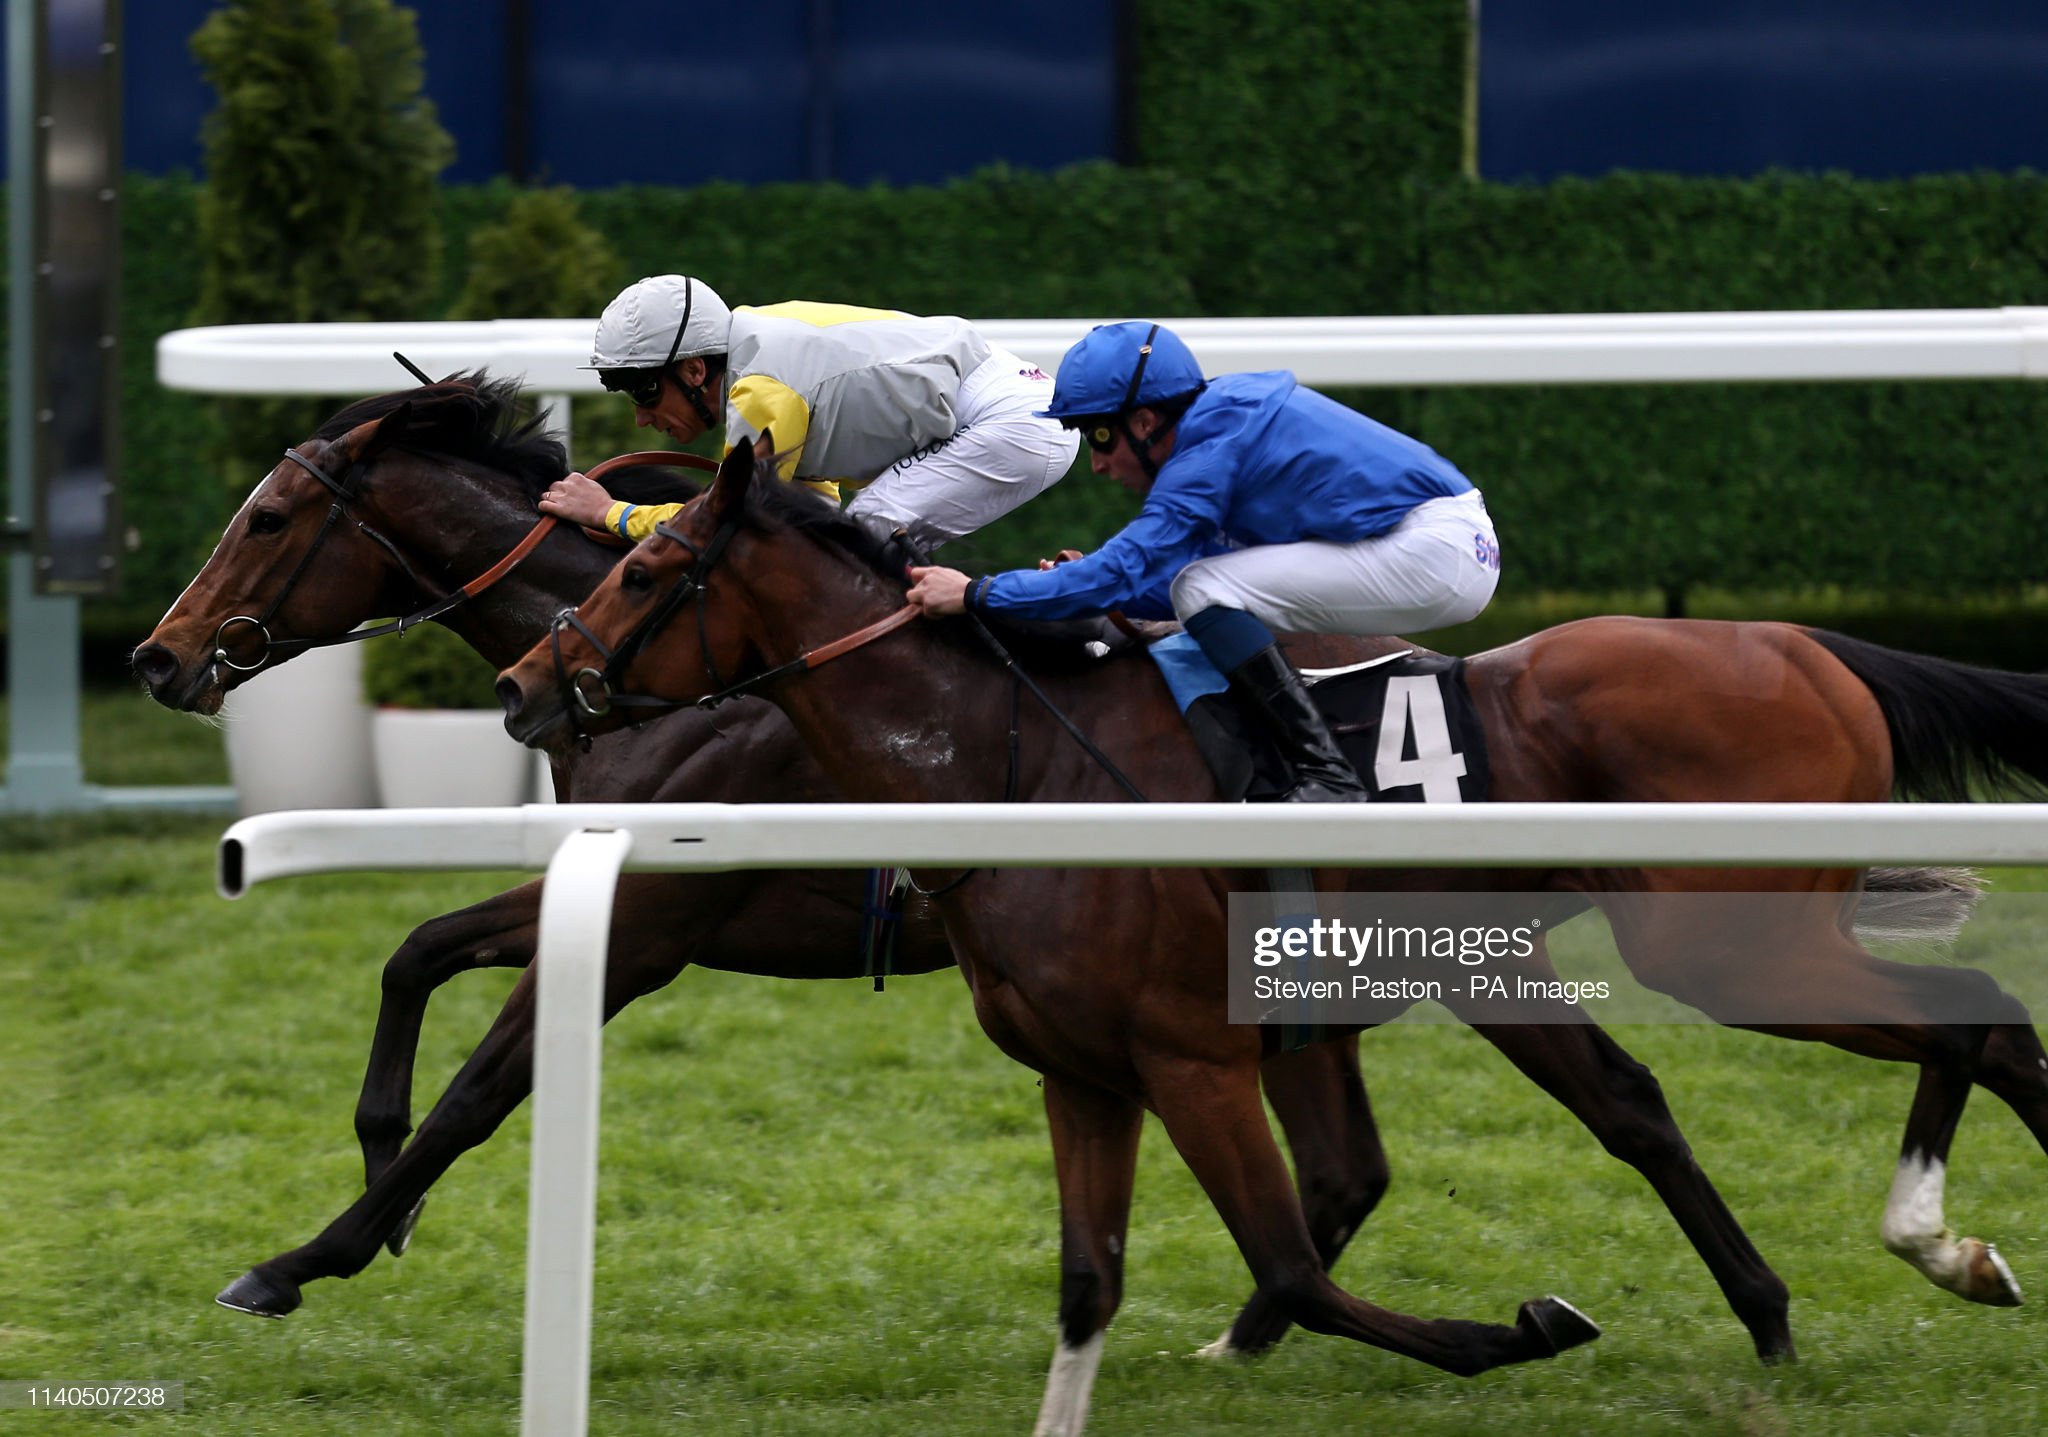 Royal Ascot Trials Day - Ascot Racecourse : Photo d'actualité